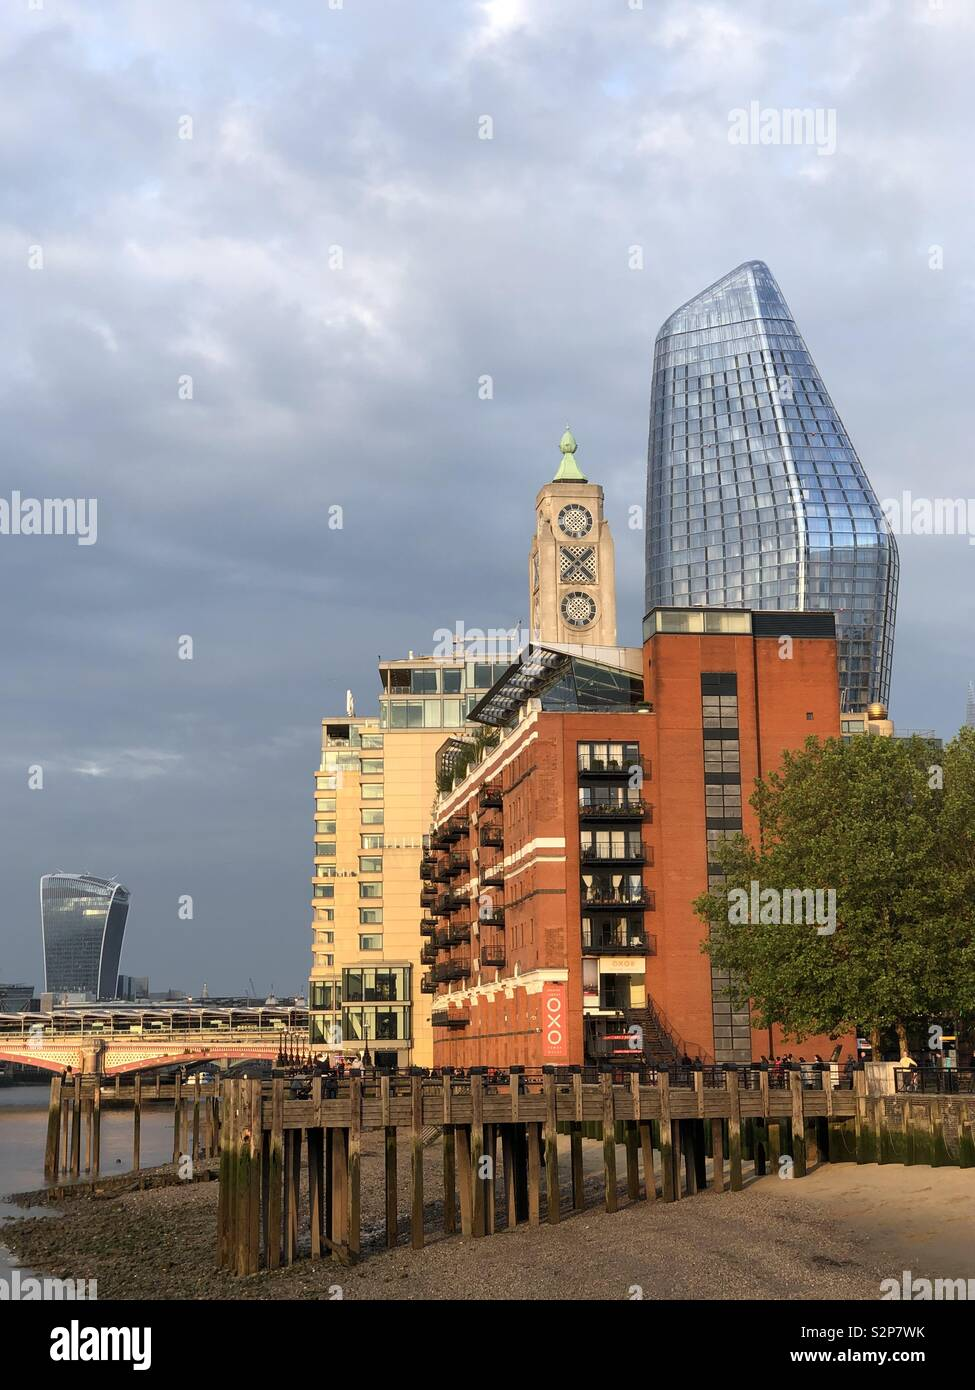 Oxo Tower, Southbank, London, UK - Stock Image